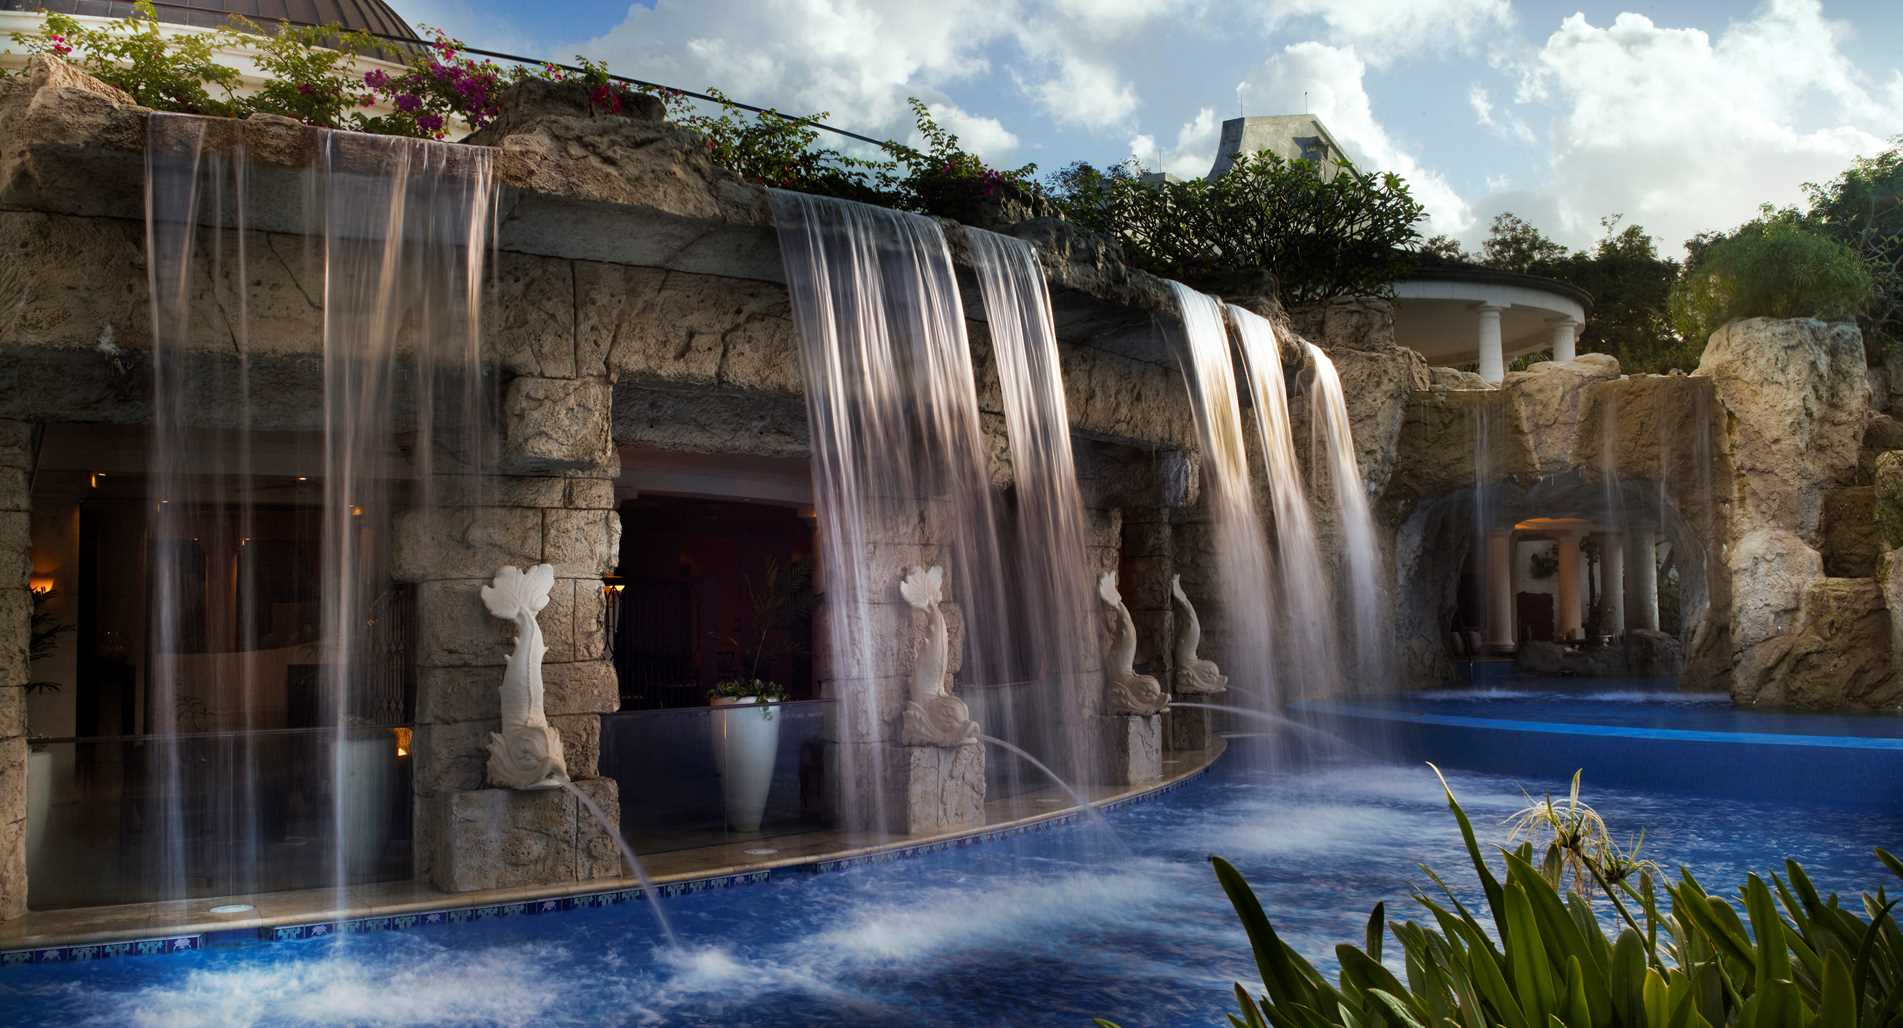 Barbados_Sandy-Lane_Waterfall-at-The-Spa.jpeg